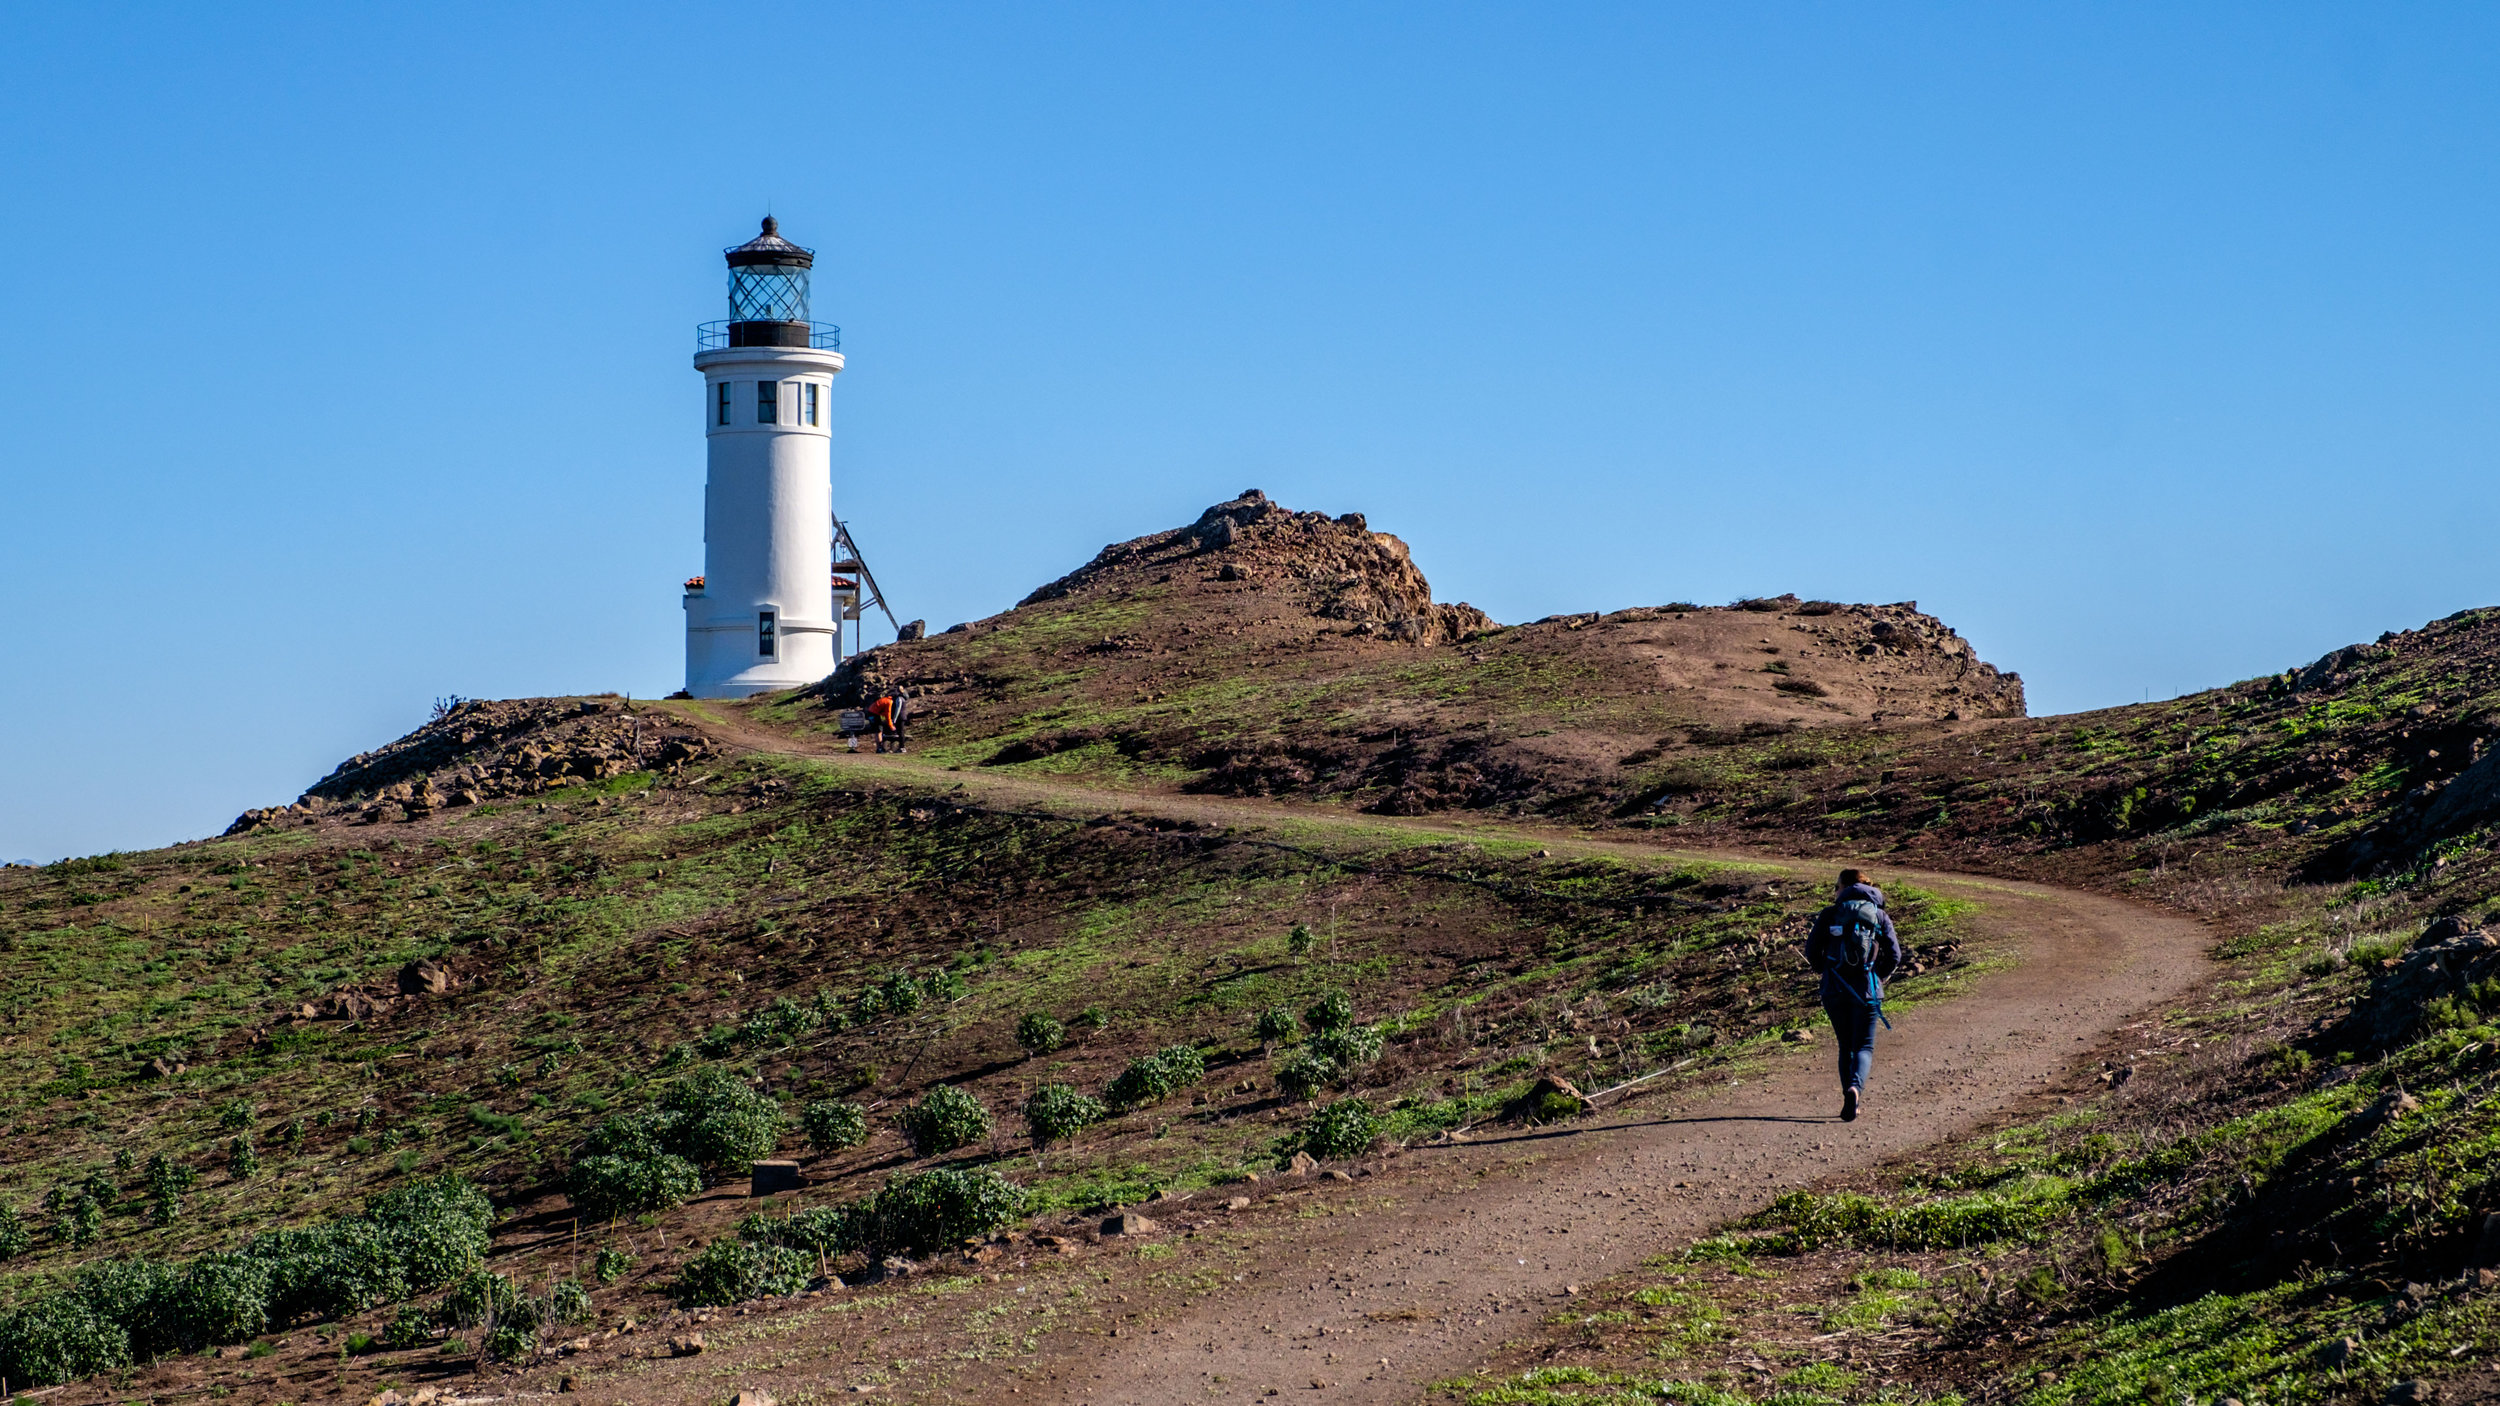 After disembarking the Island Packers ship, the first activity for many is a short hike to the Anacapa Island Light Station.